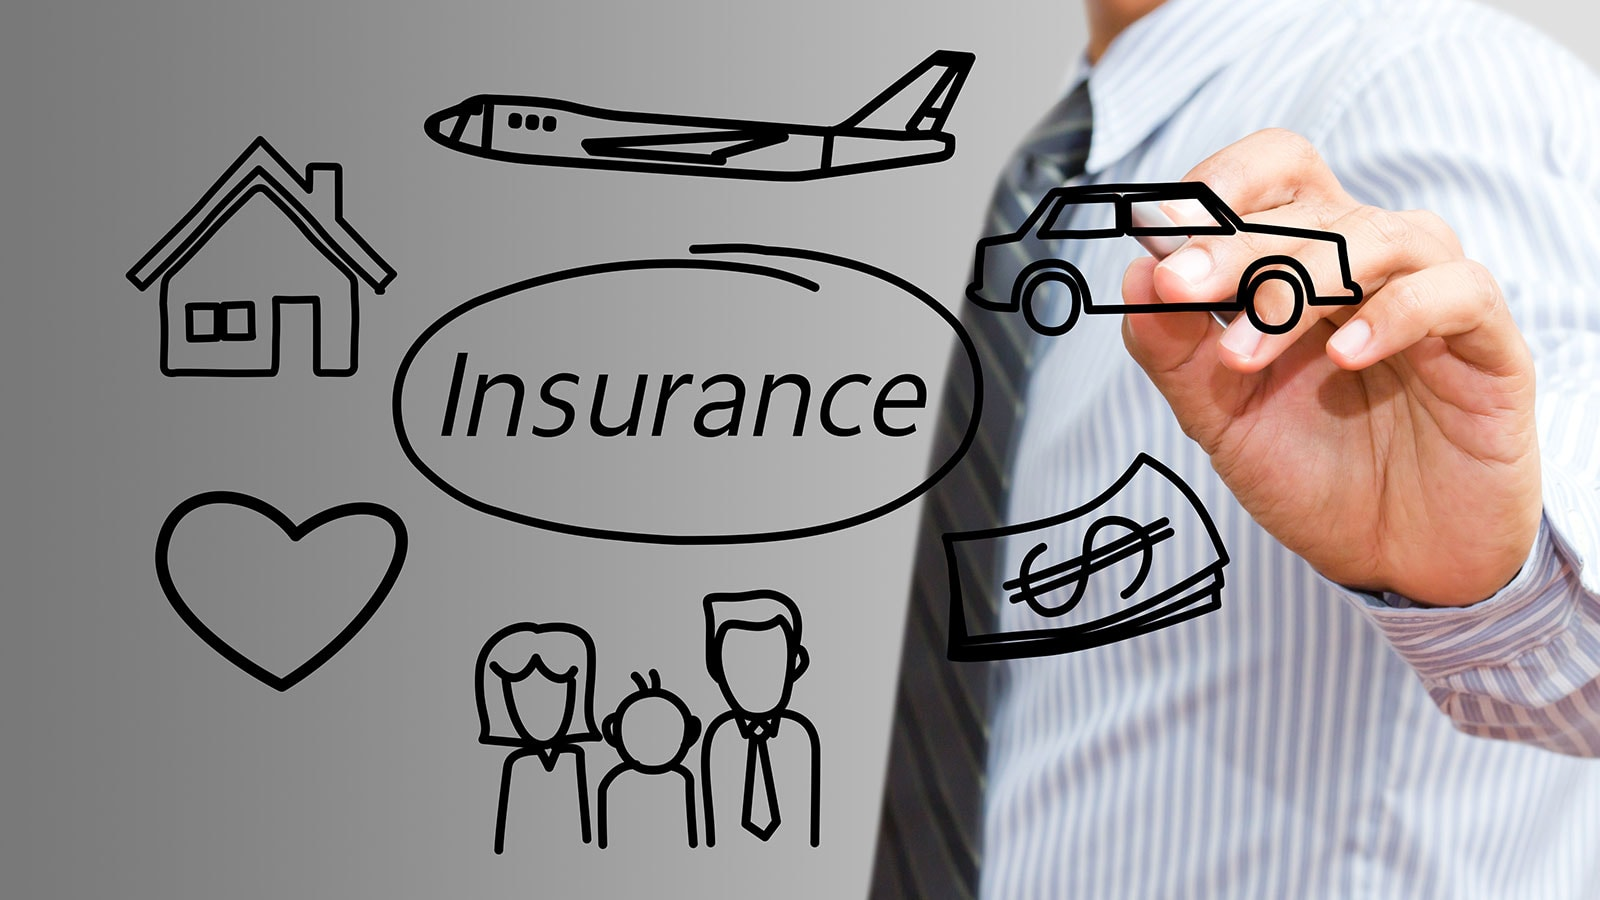 Eddy & Schein can help navigate the complexities of insurance.